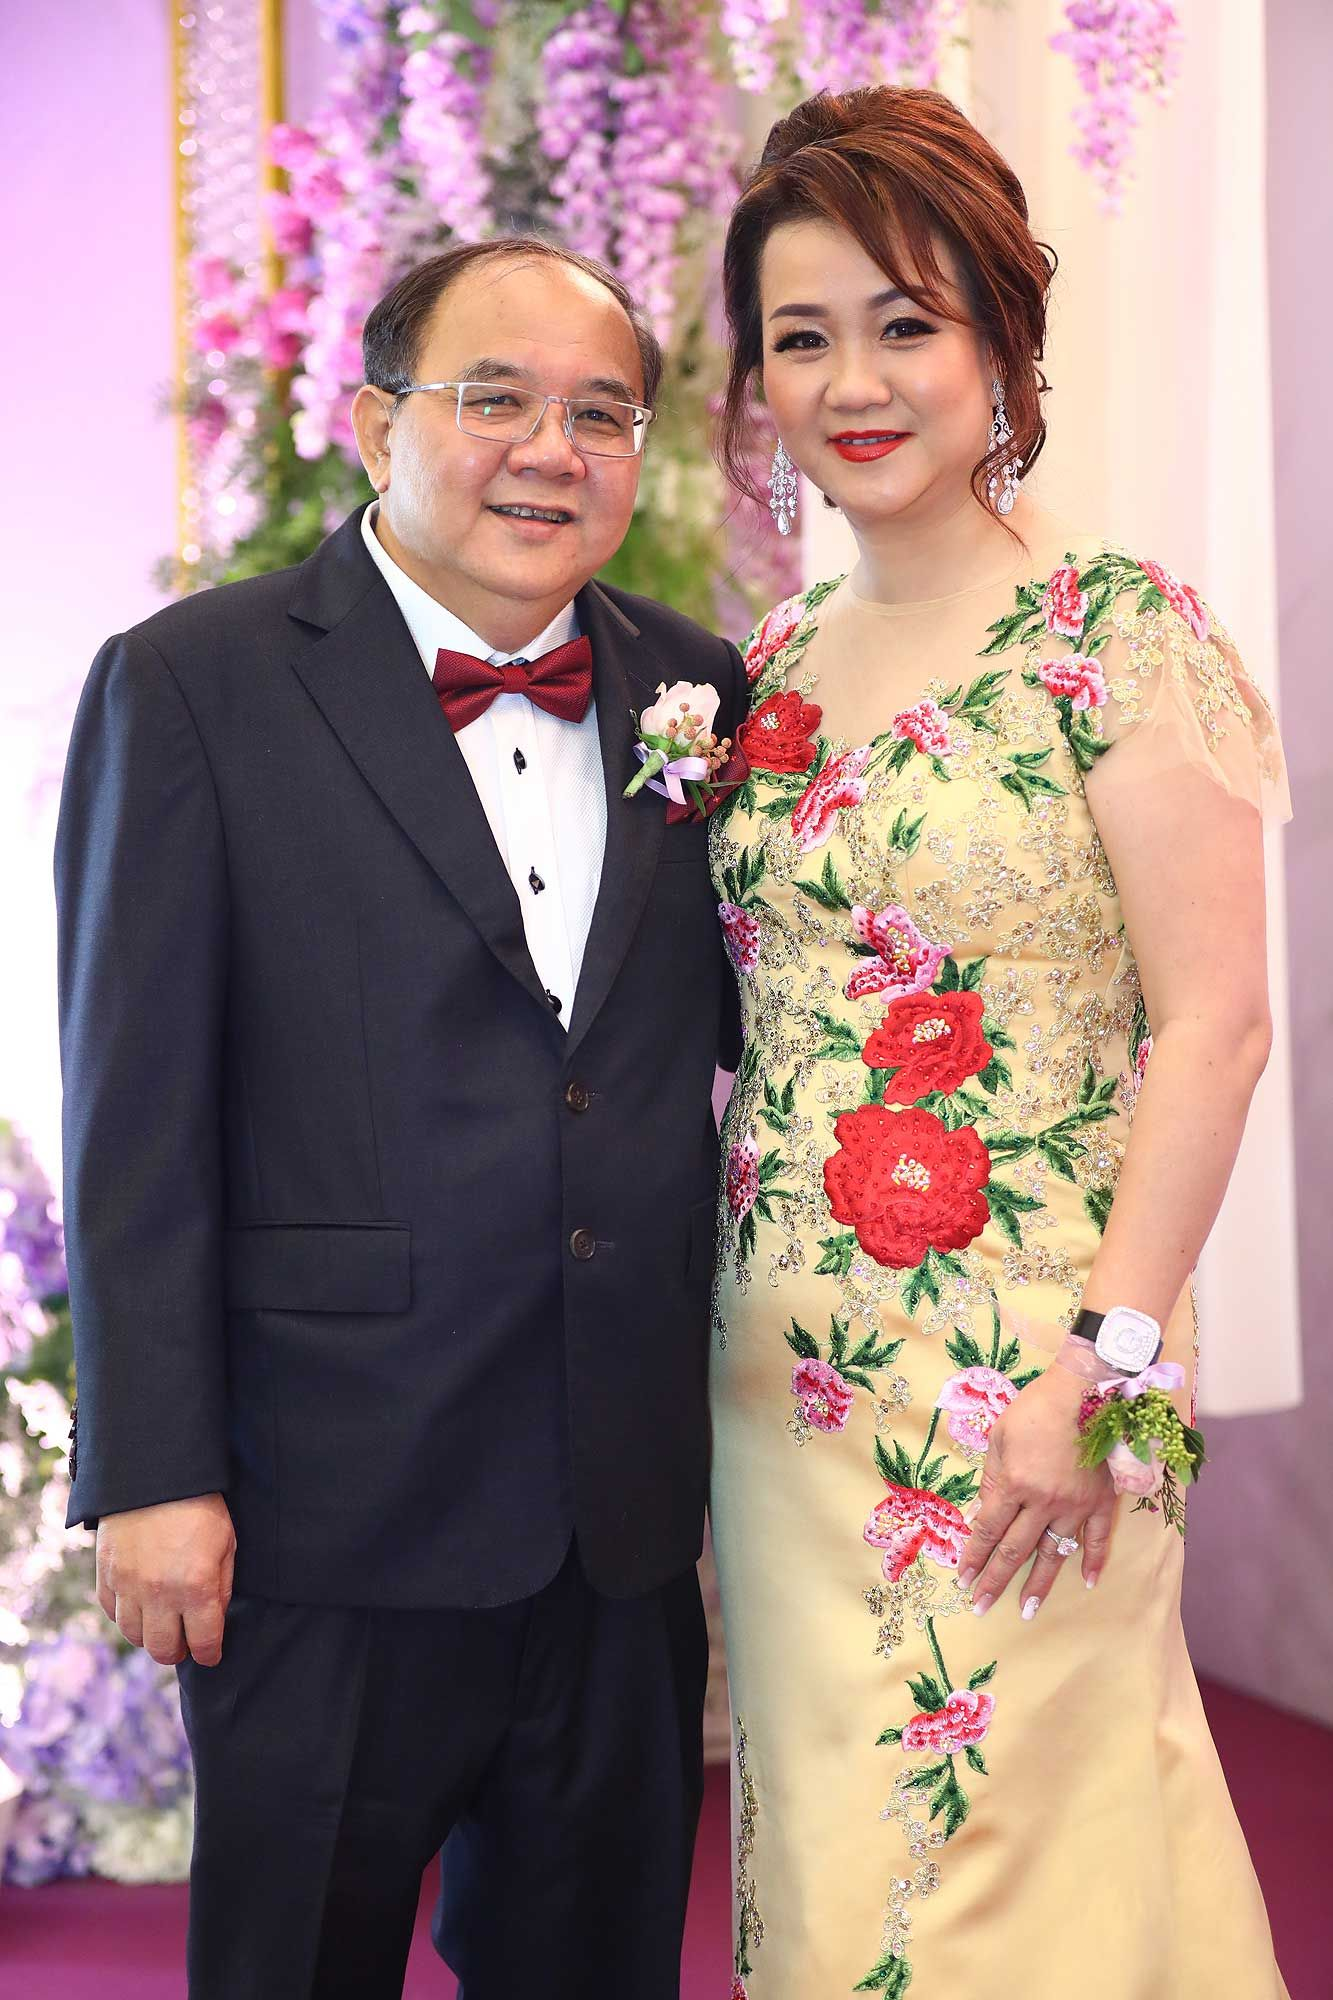 The bride's parents, Chan Sun Cheong and Sally Chang